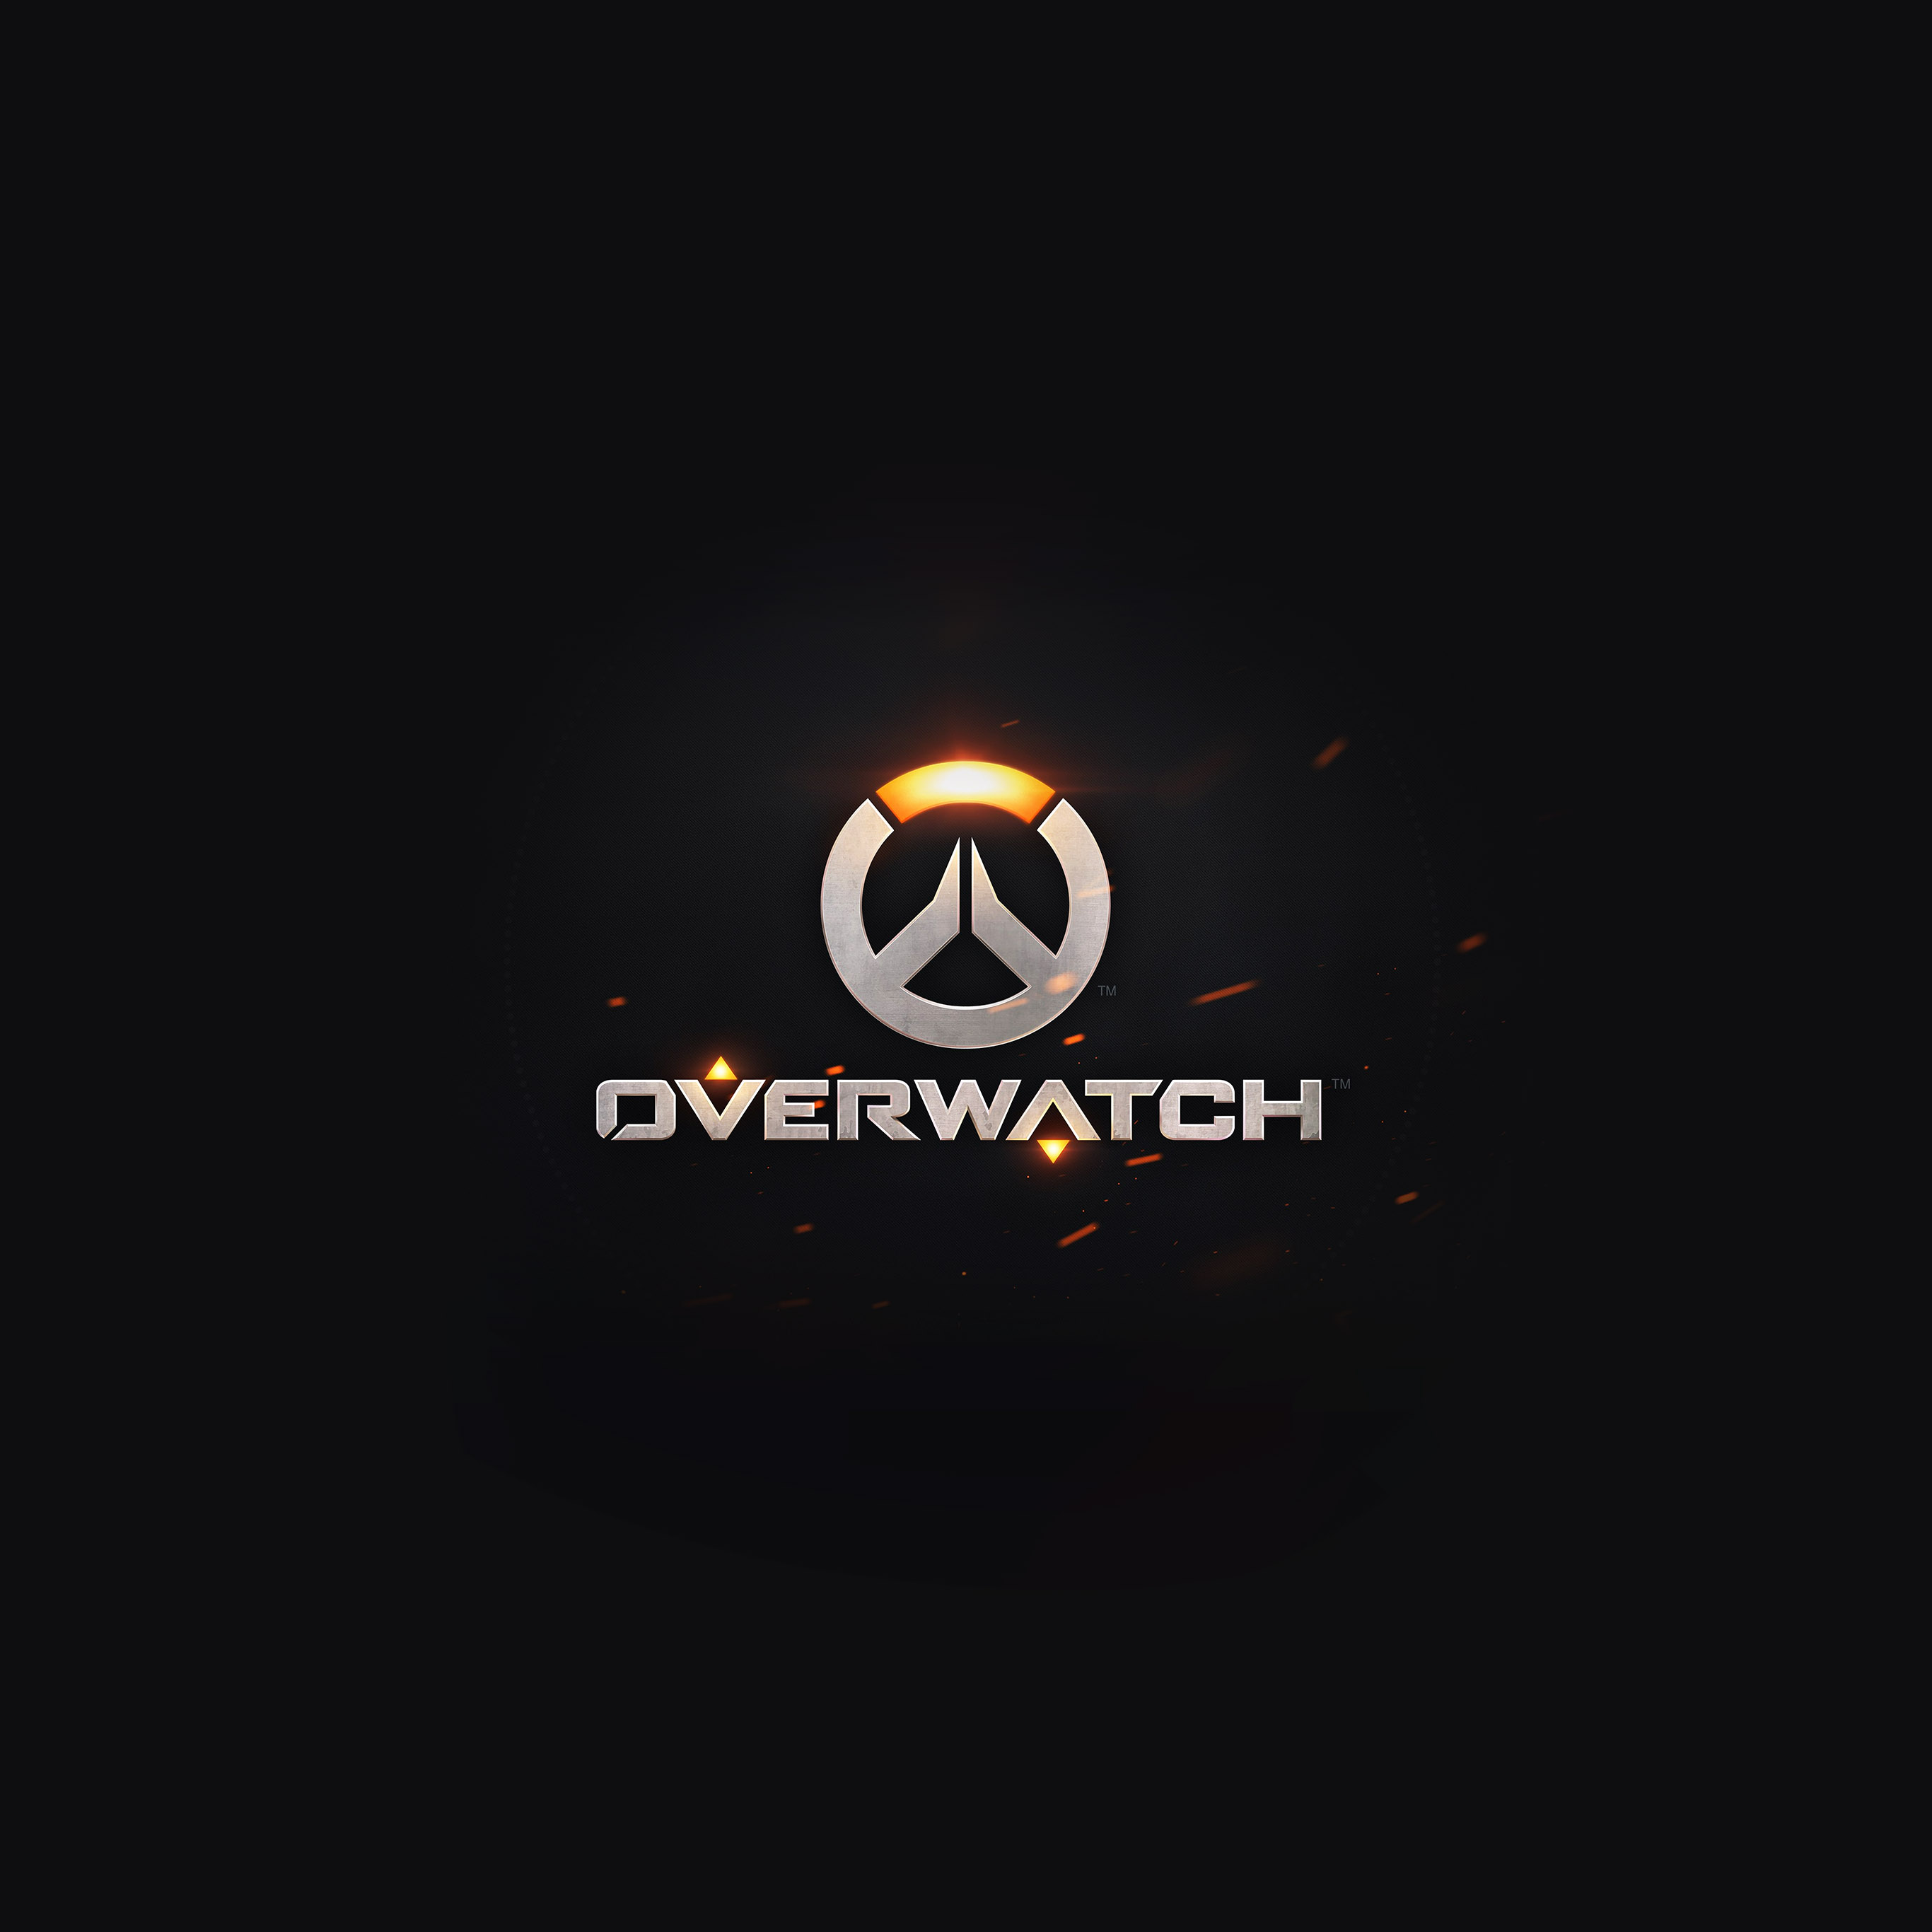 Galaxy S4 Fall Wallpaper Papers Co Android Wallpaper Ar97 Overwatch Logo Simple